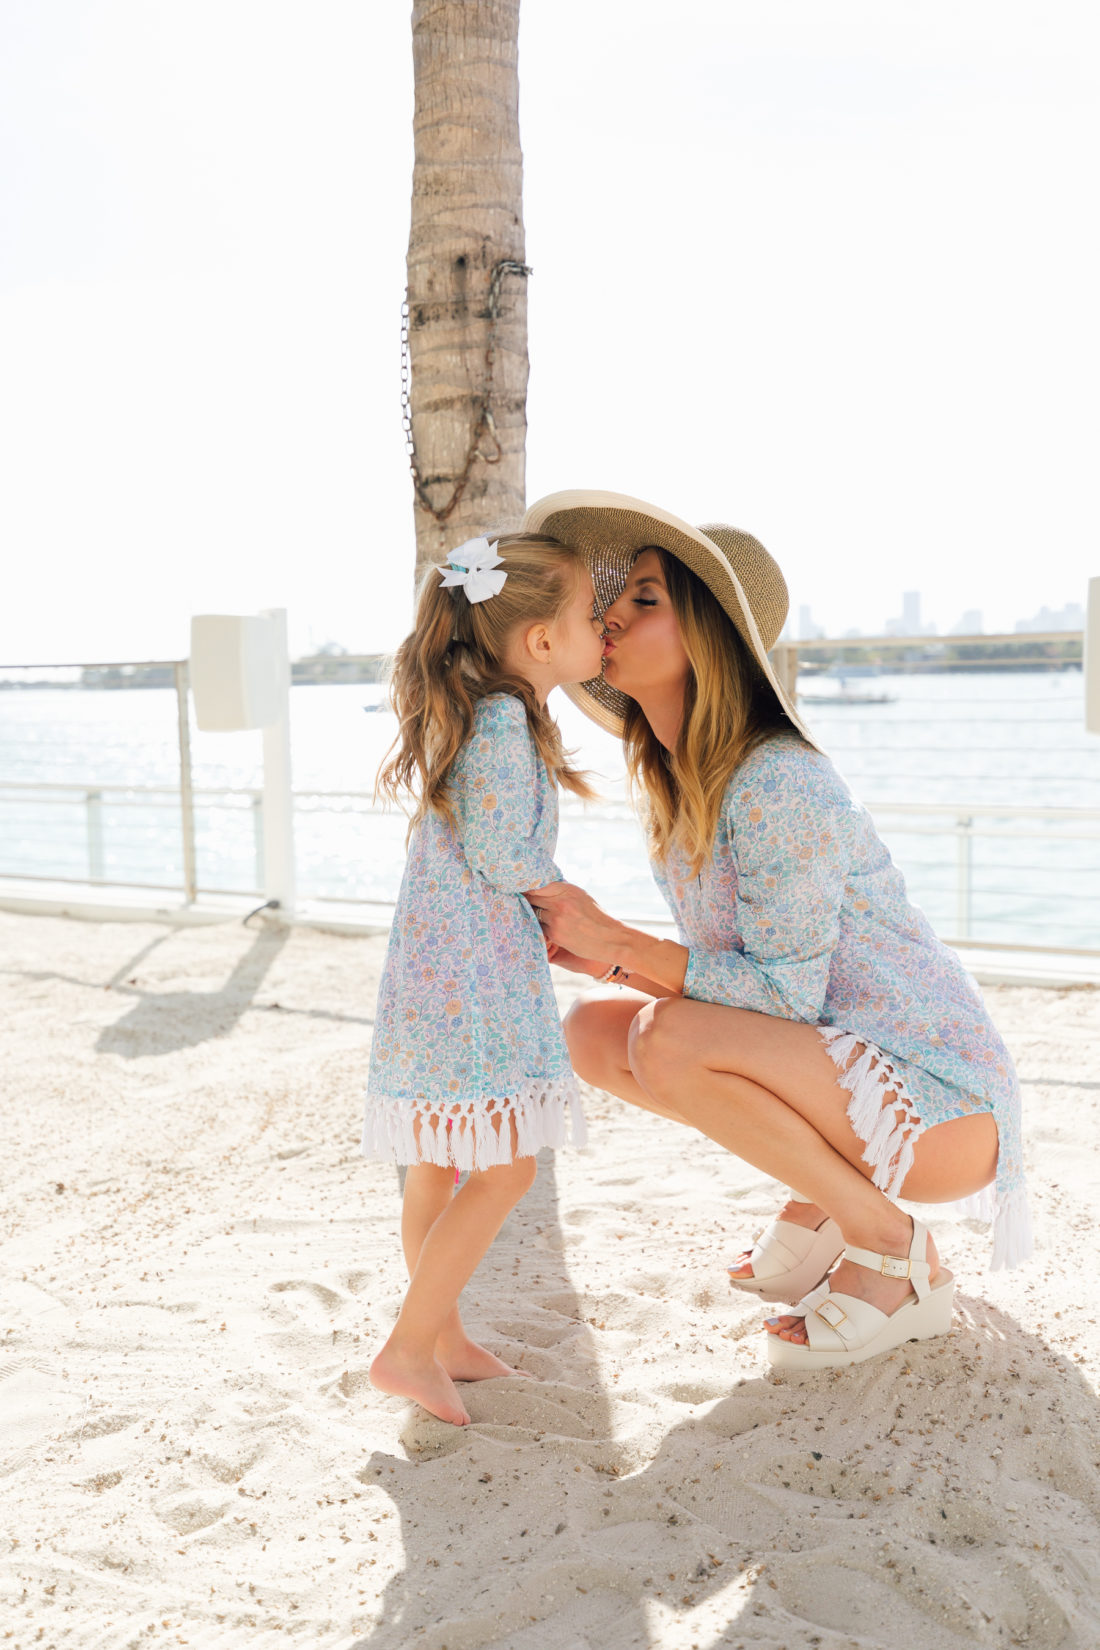 Eva Amurri Martino shares a sweet kiss with daughter Marlowe Martino on the beach in Miami while wearing their matching Mother daughter fringe tunics from the Happily Eva After x Masala Baby collection